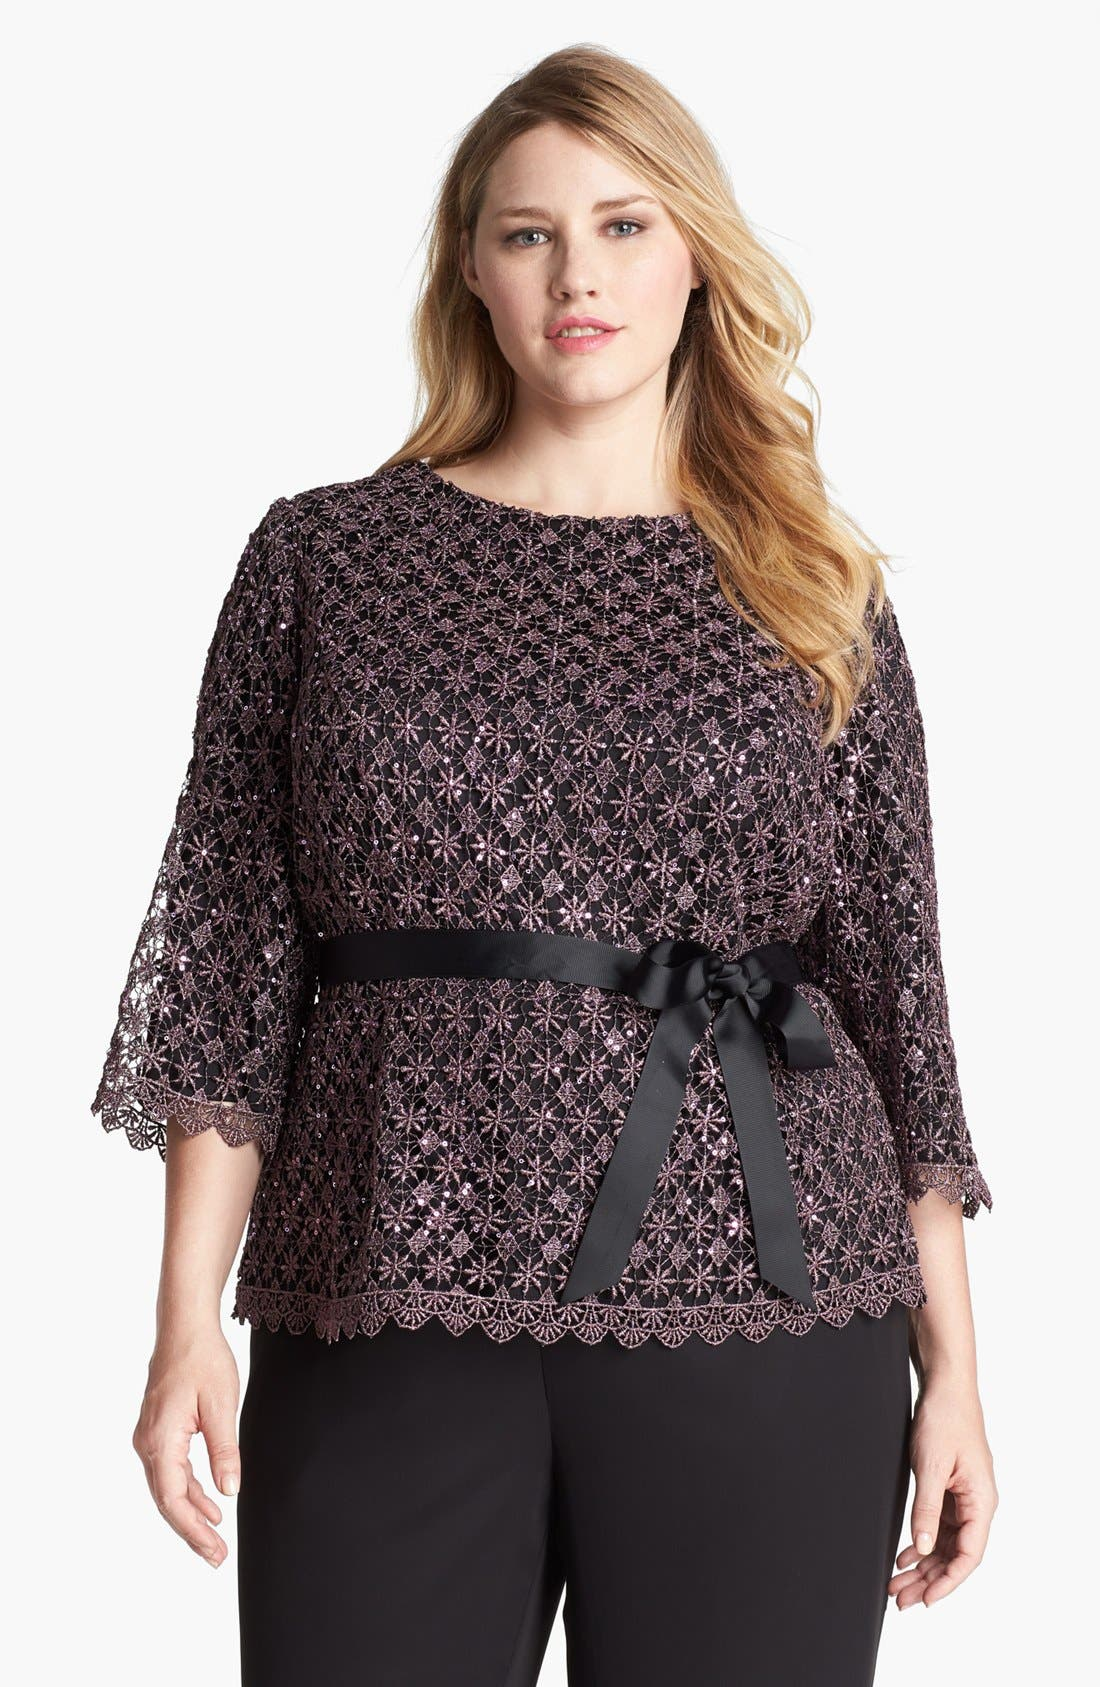 Alternate Image 1 Selected - Alex Evenings Metallic Lace Blouse (Plus Size)